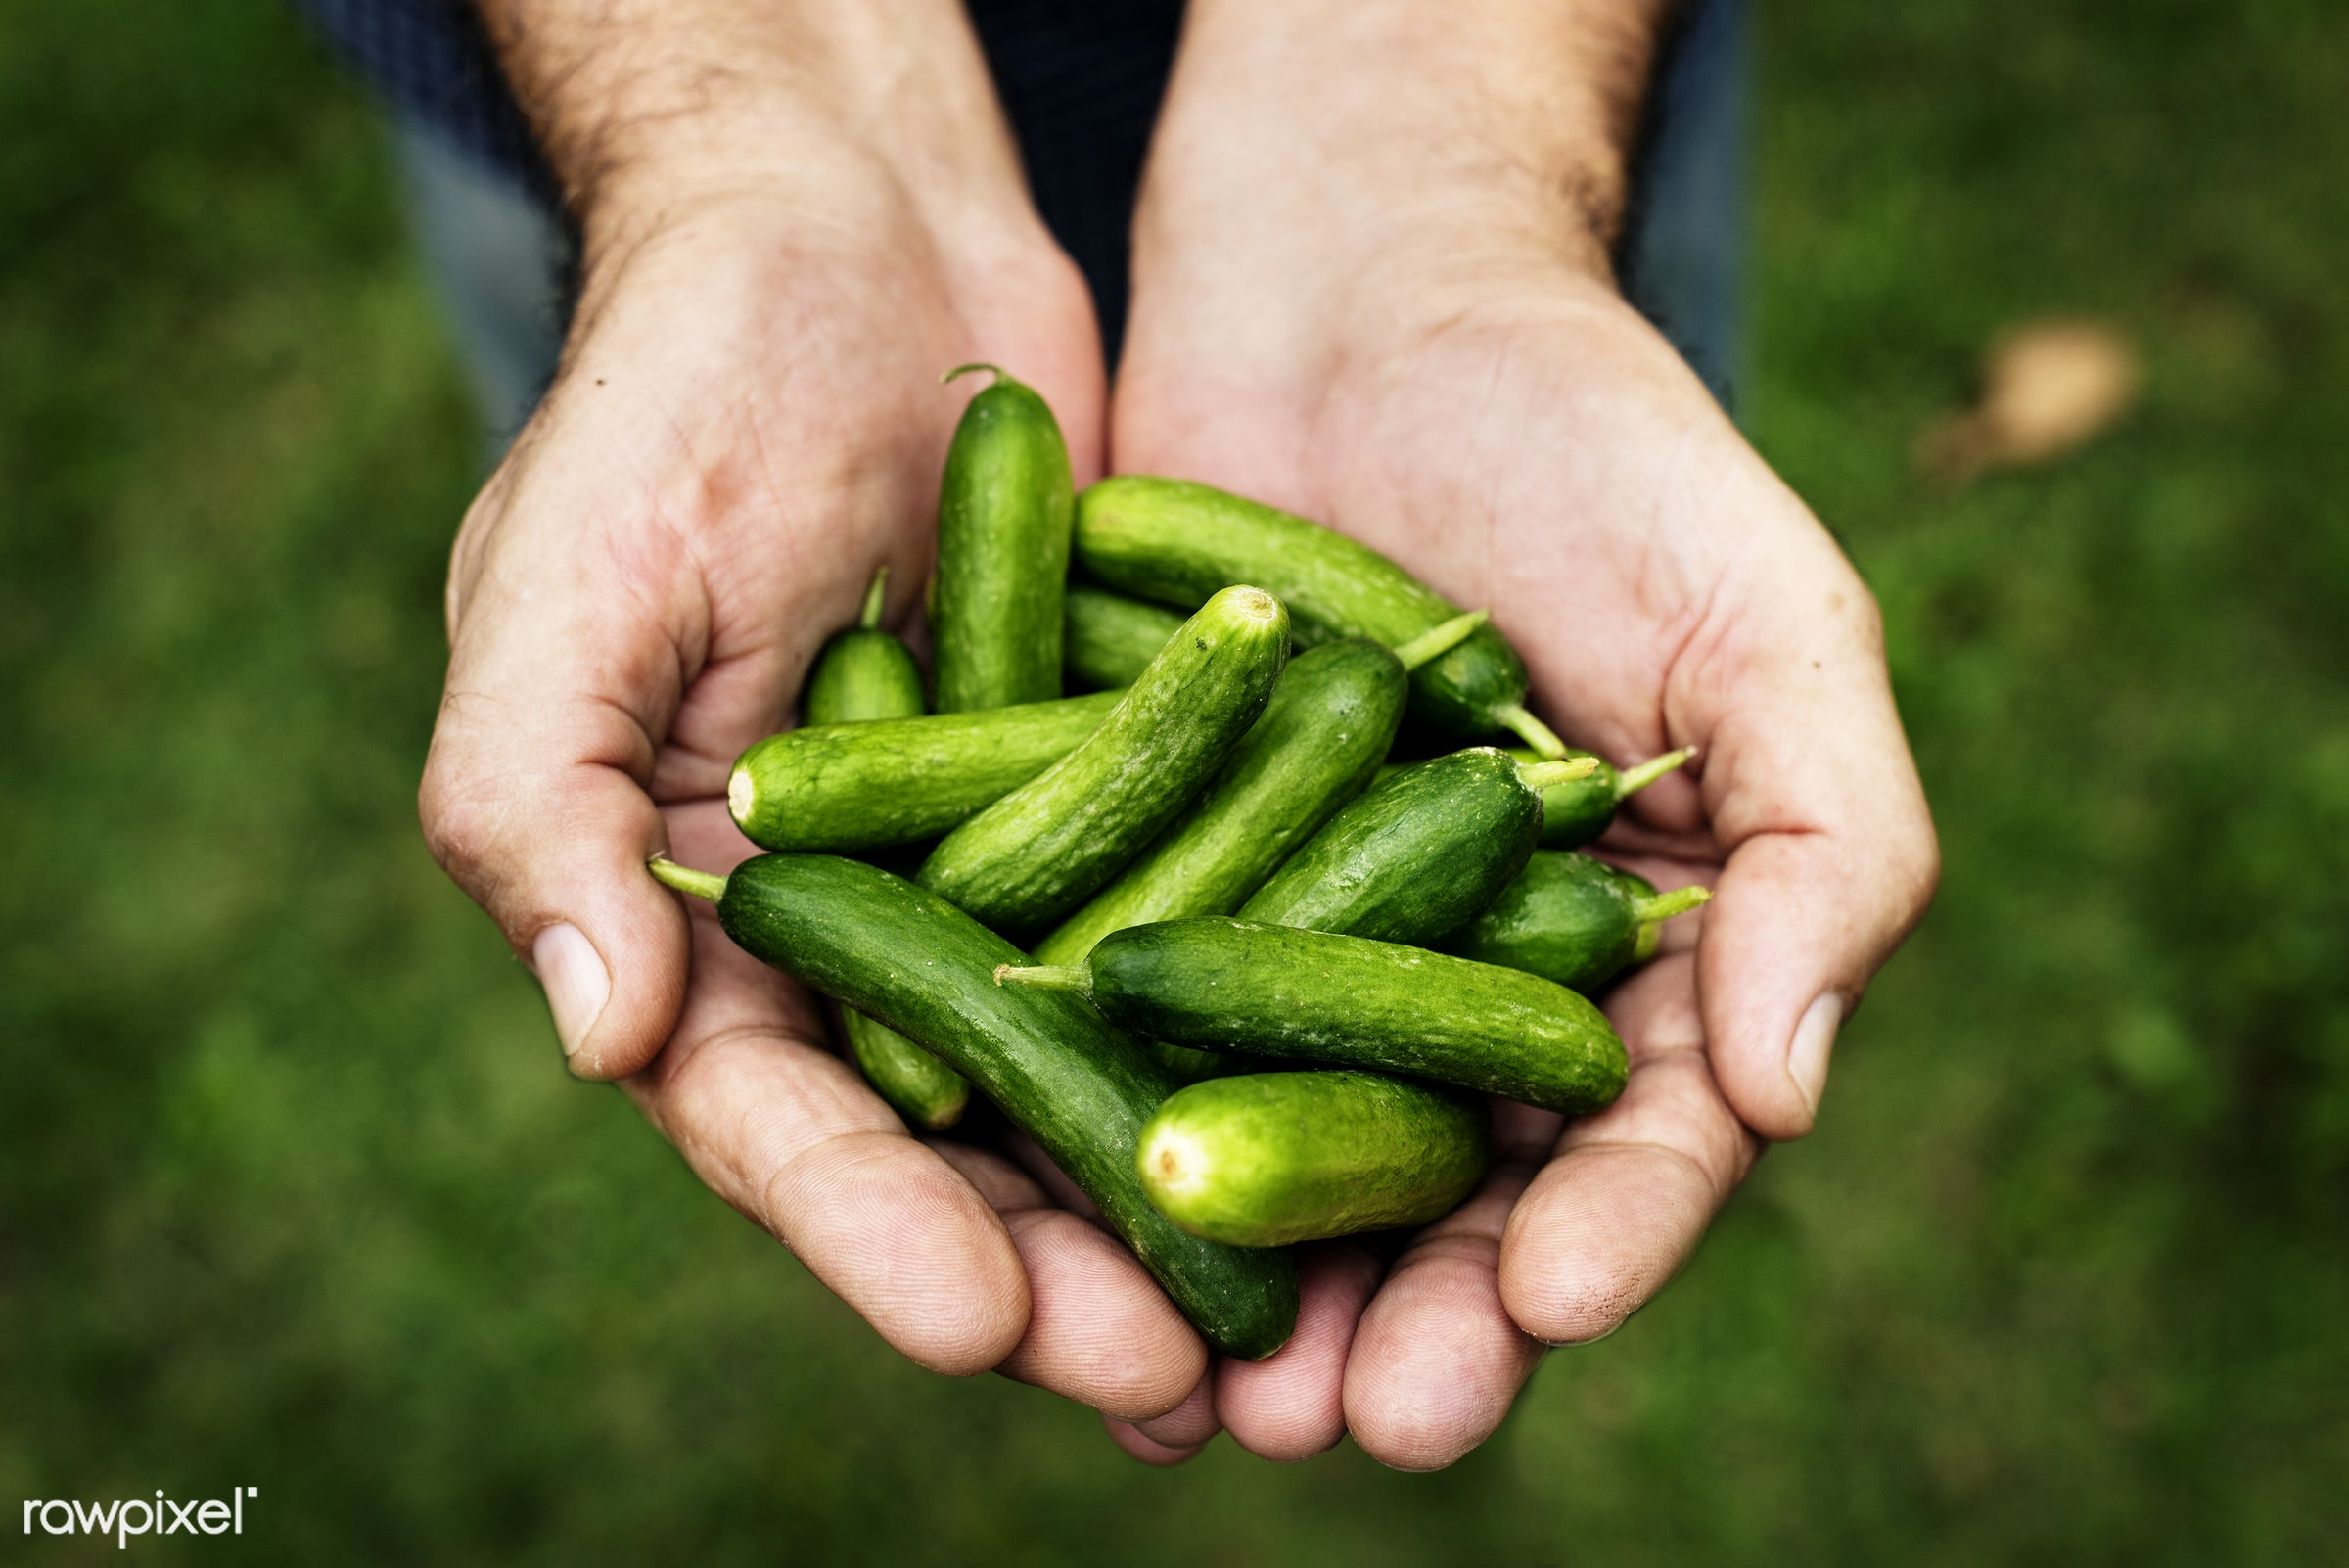 Hands holding a green vegetable - raw, holding, fiber, kind, nature, hands, fresh, ingredient, closeup, green, culinary,...